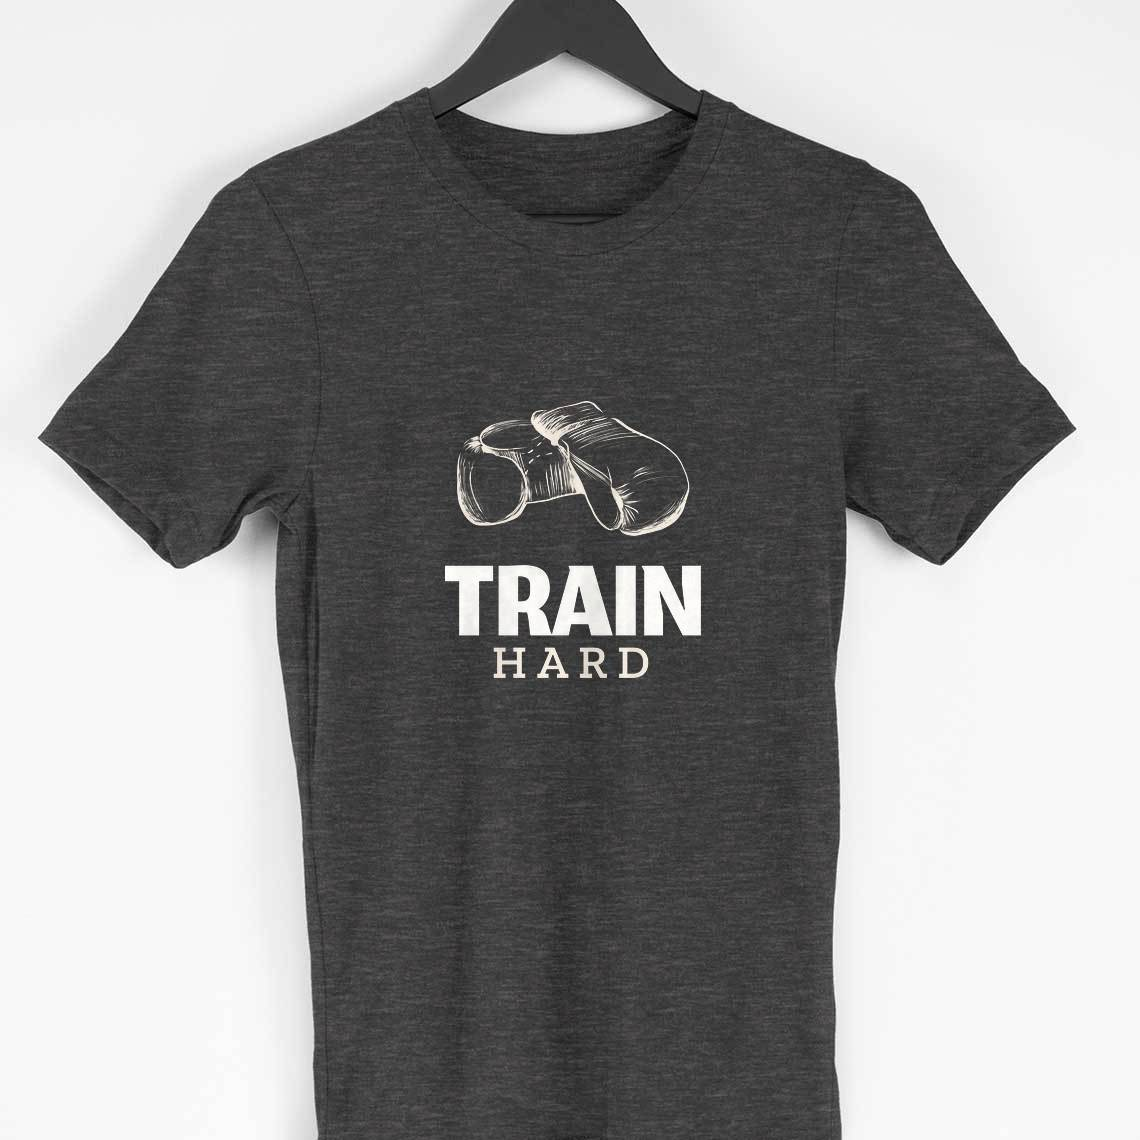 Train Hard Clothing Printrove Charcoal Grey S